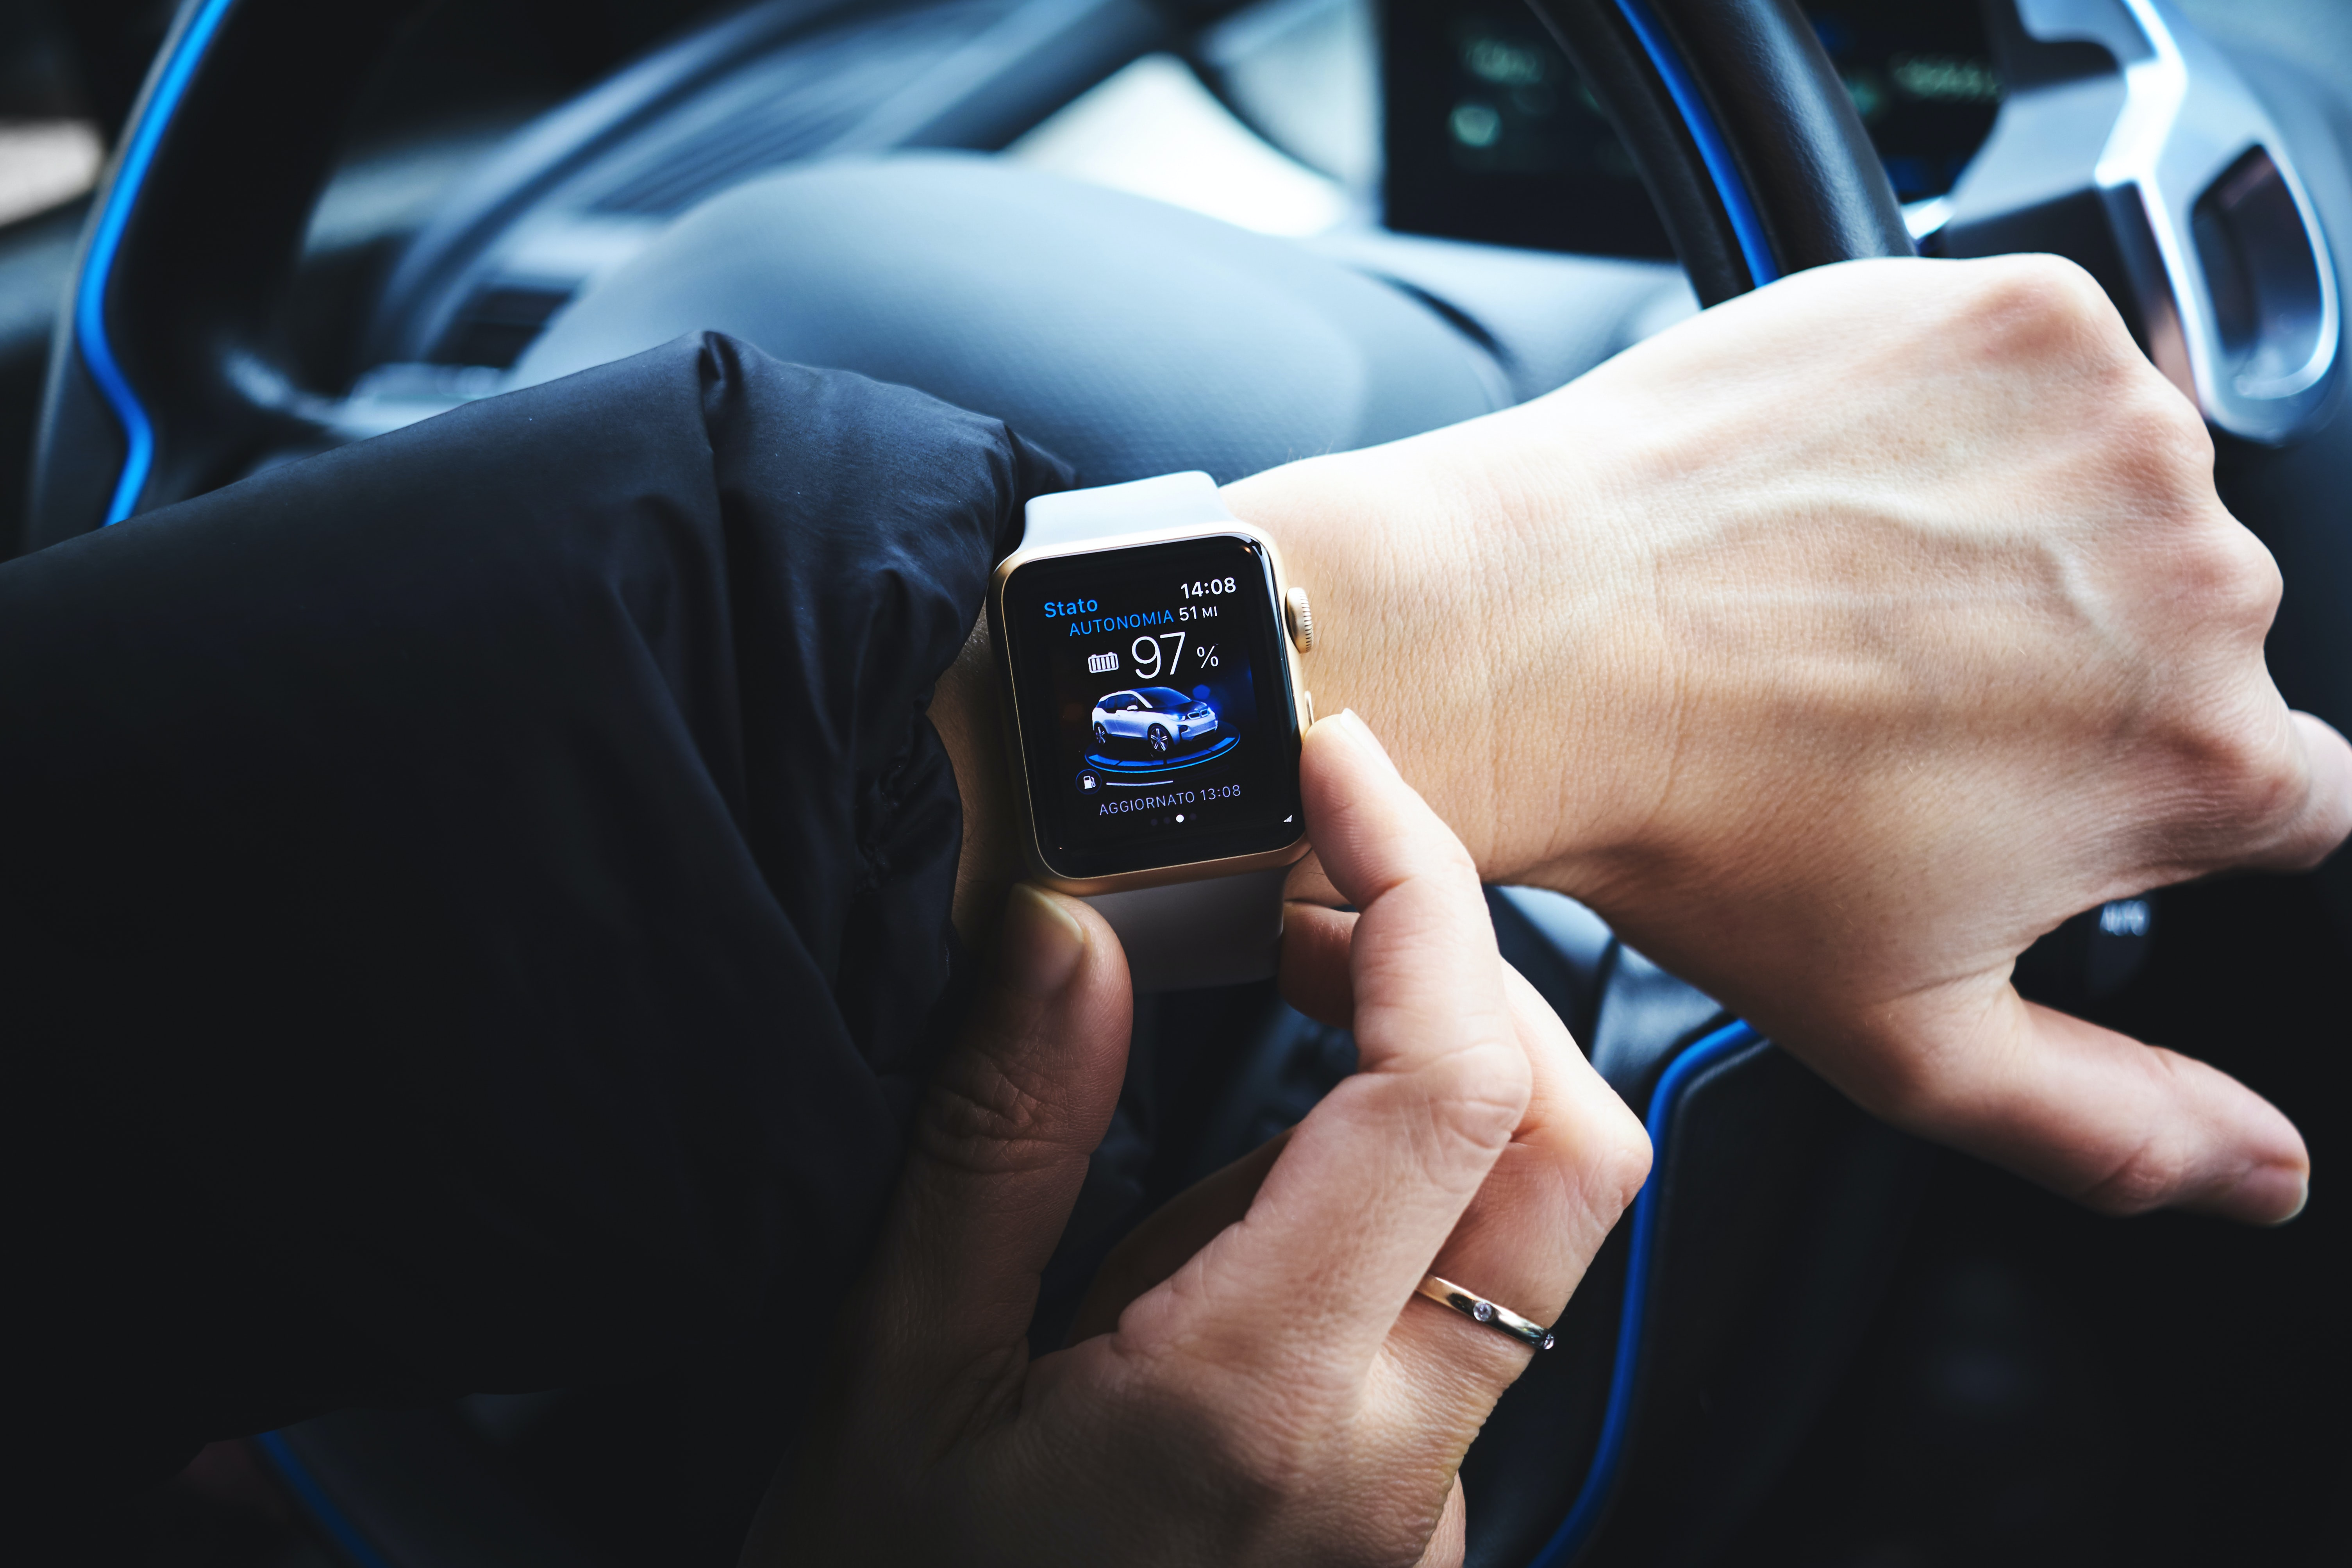 A person using an Apple Watch while driving a car